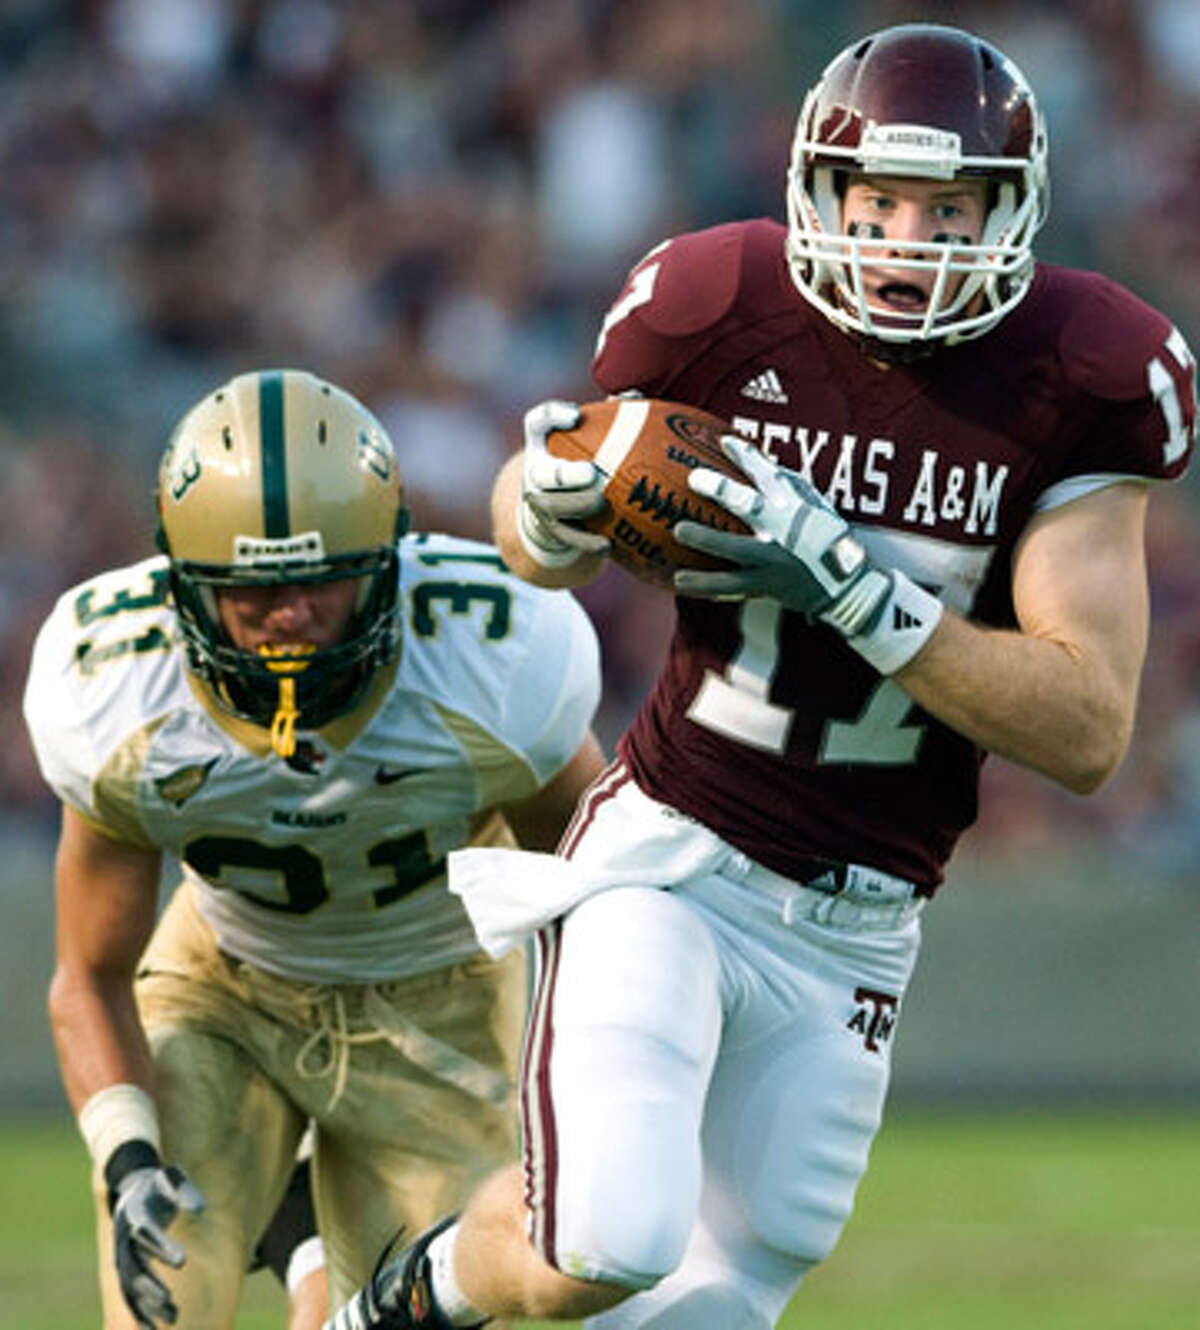 Ryan Tannehill is the Aggies' No. 1 active career receiver as well as their backup quarterback.